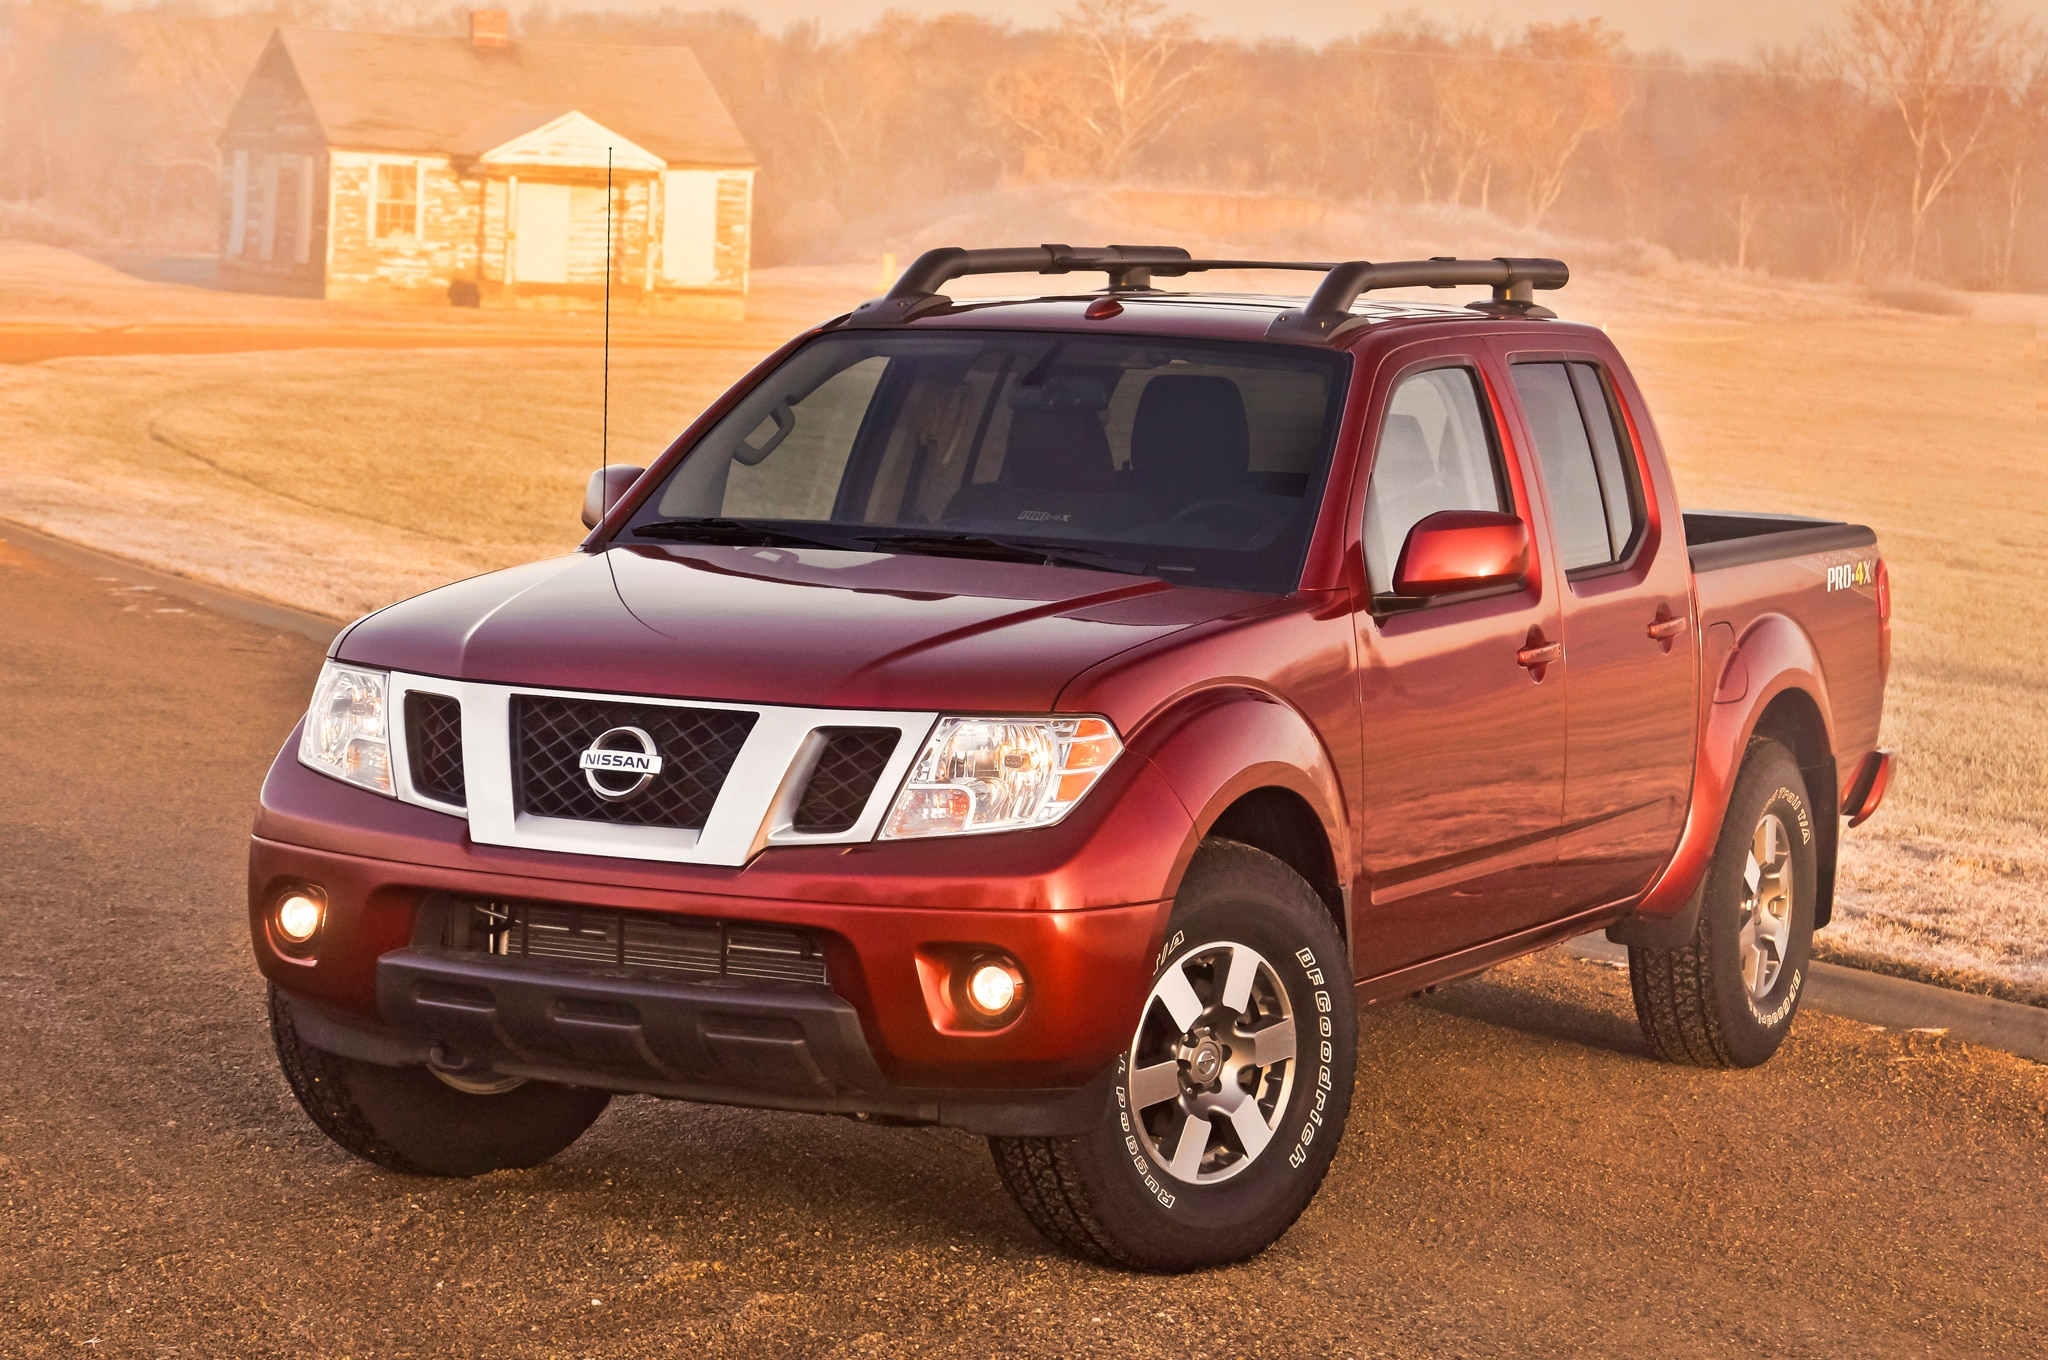 pricing announced for 2014 nissan frontier pickup xterra suv. Black Bedroom Furniture Sets. Home Design Ideas